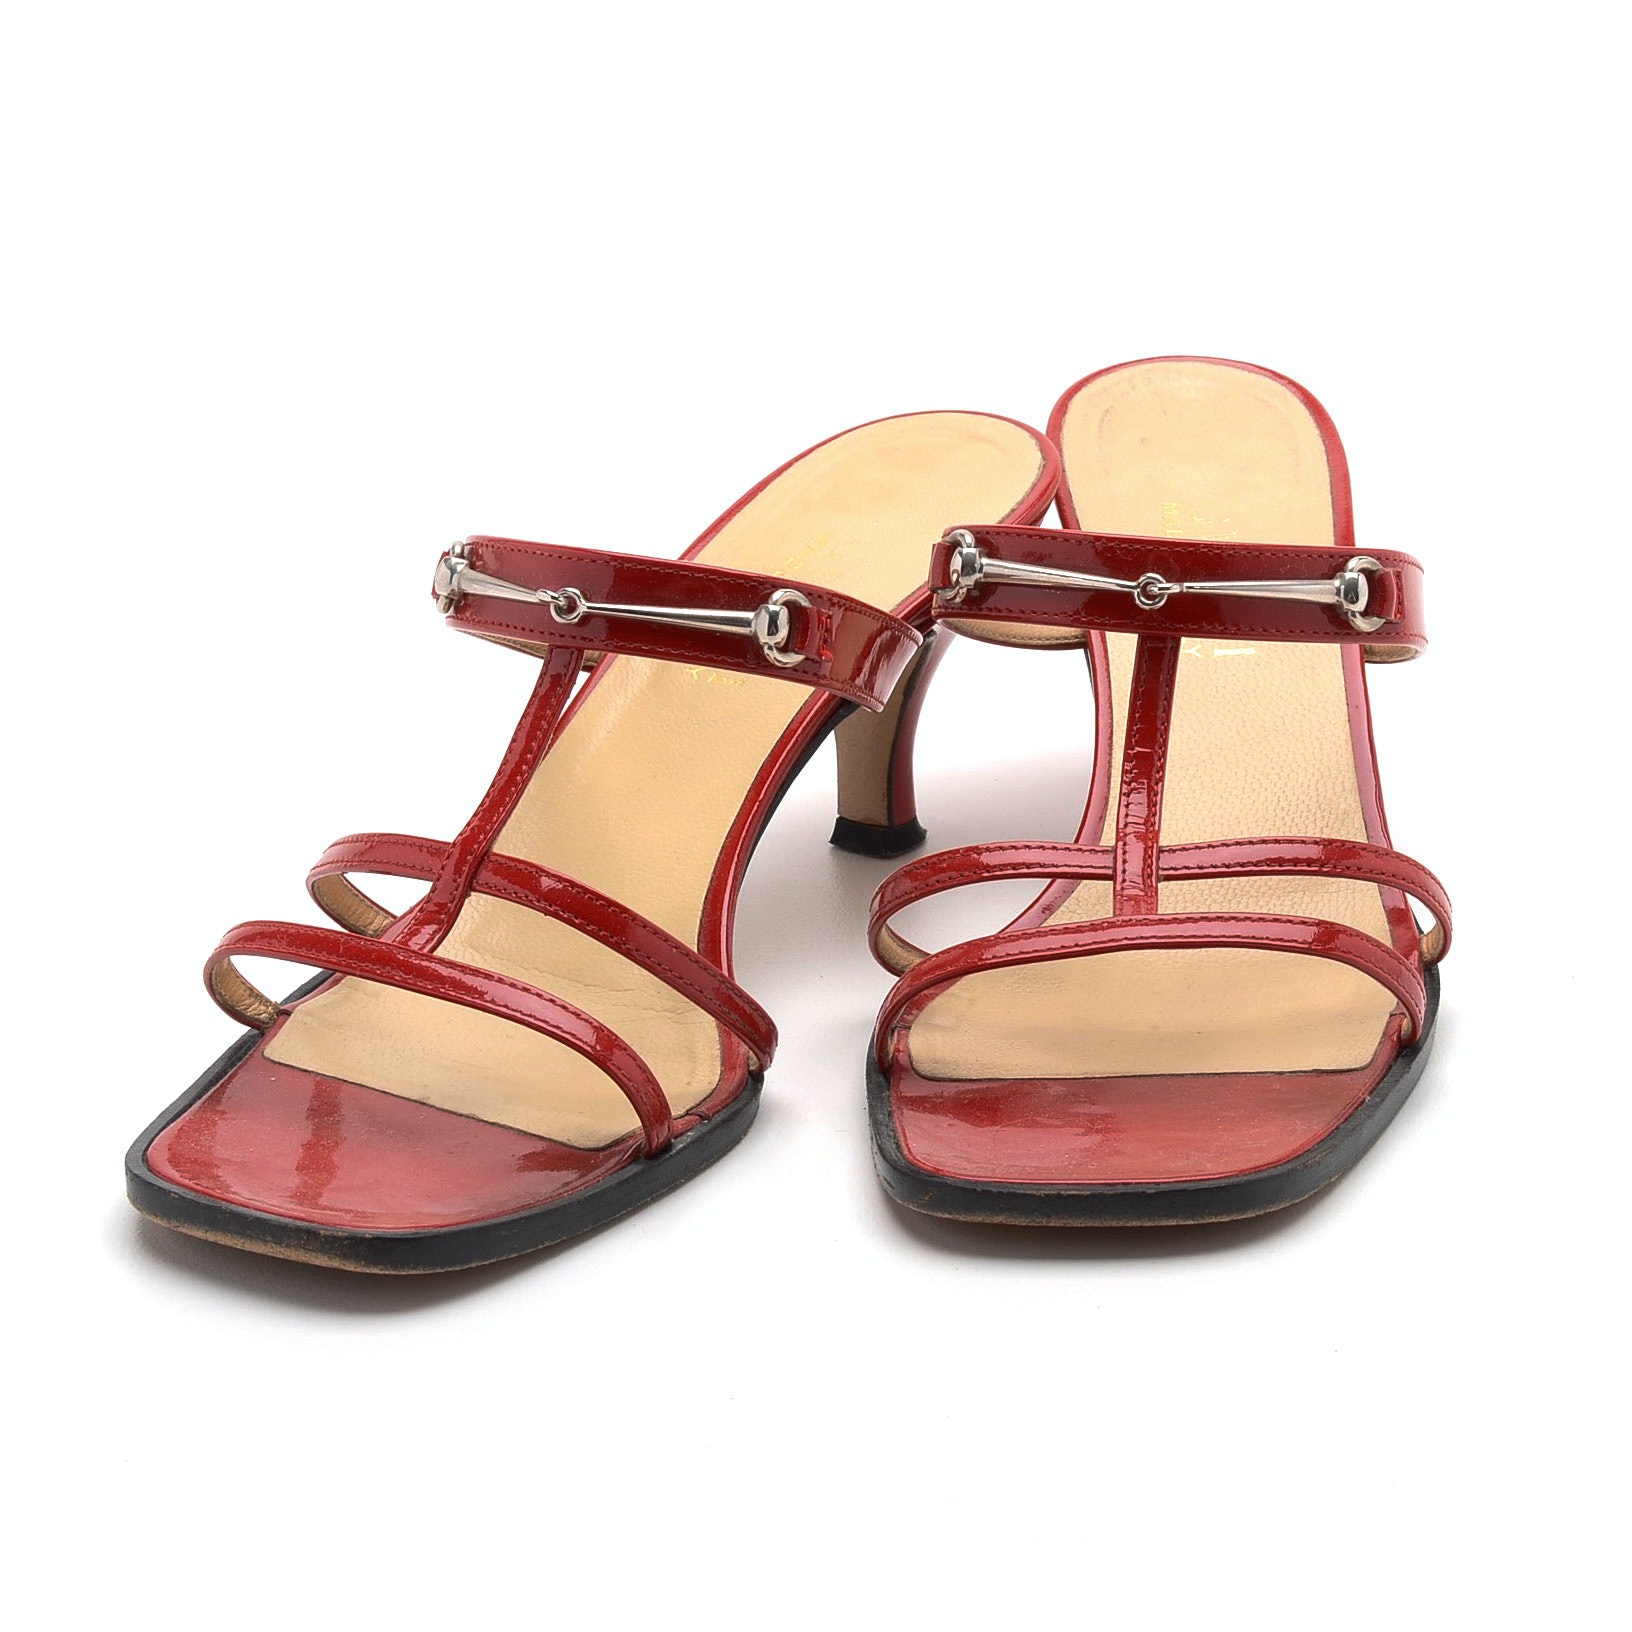 Gucci Strappy Red Patent Leather Slide Dress Sandals with Kitten Heel